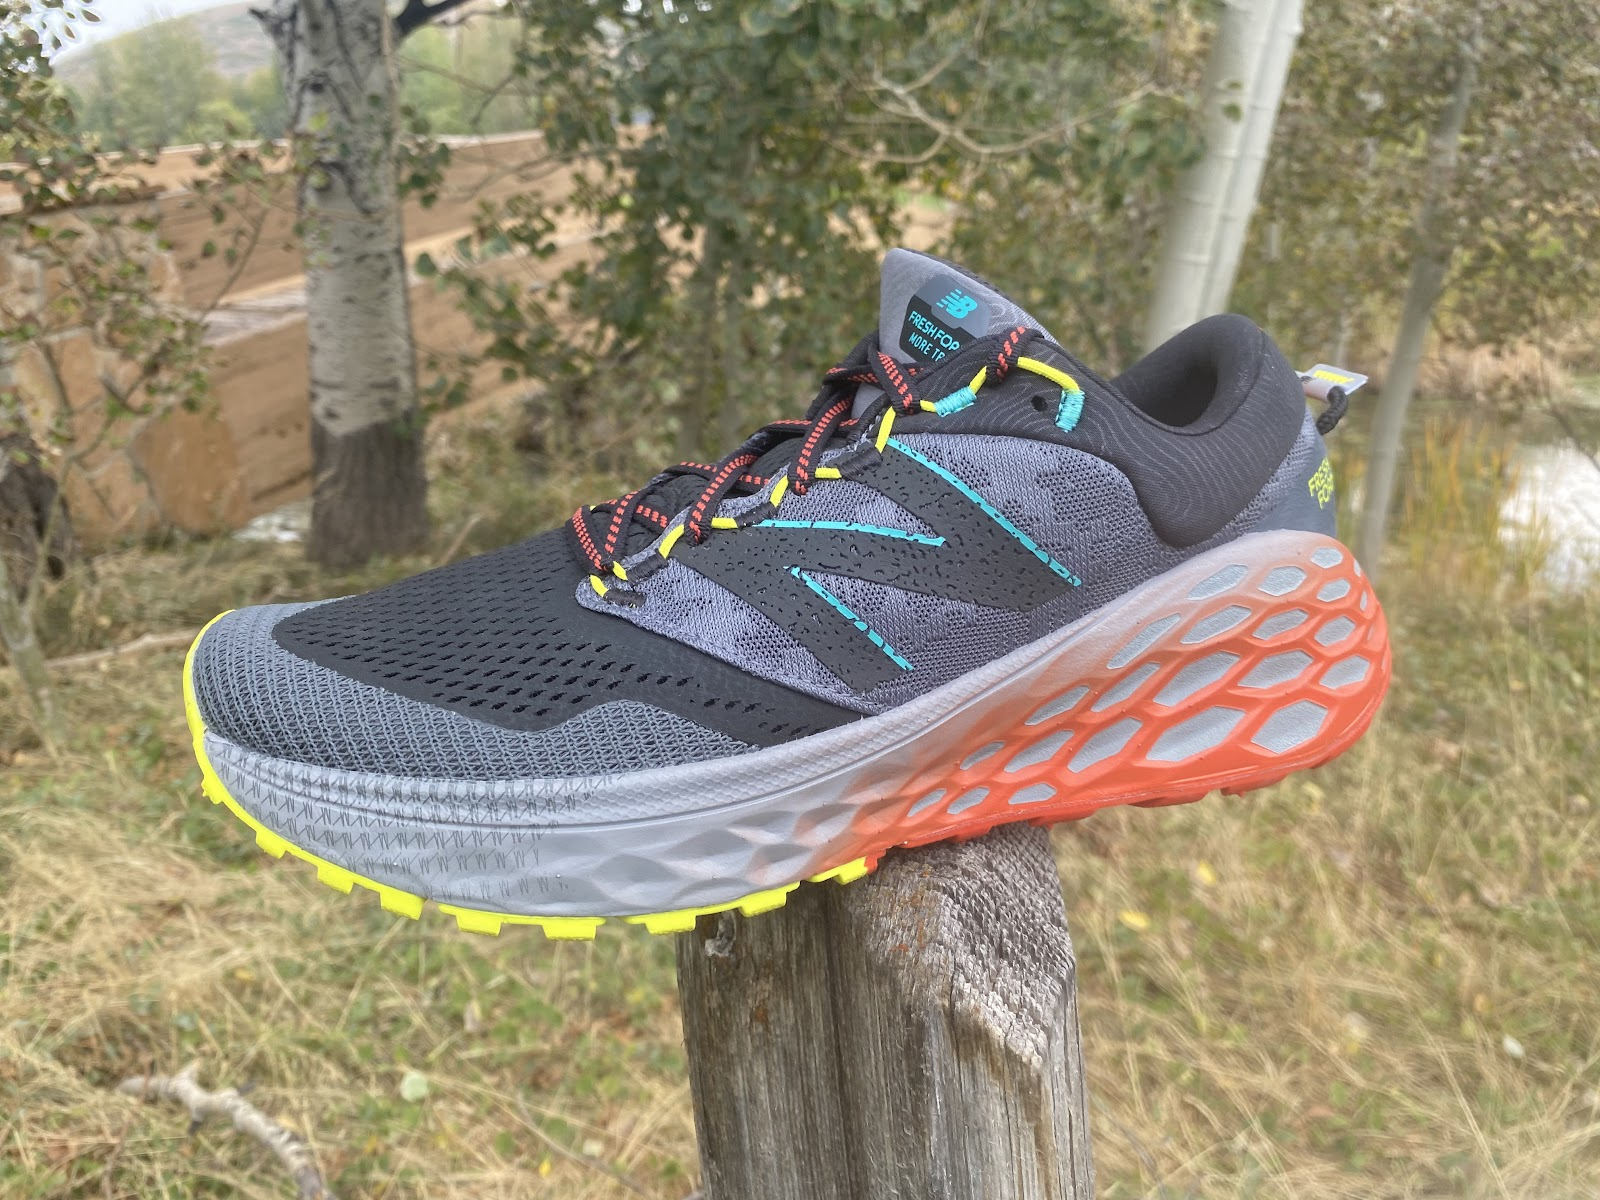 rutina Máquina de recepción fuego  Road Trail Run: New Balance Fresh Foam More Trail v1 Multi Tester Review:  Comfortable, Plush,Max Cushion Trail Cruiser